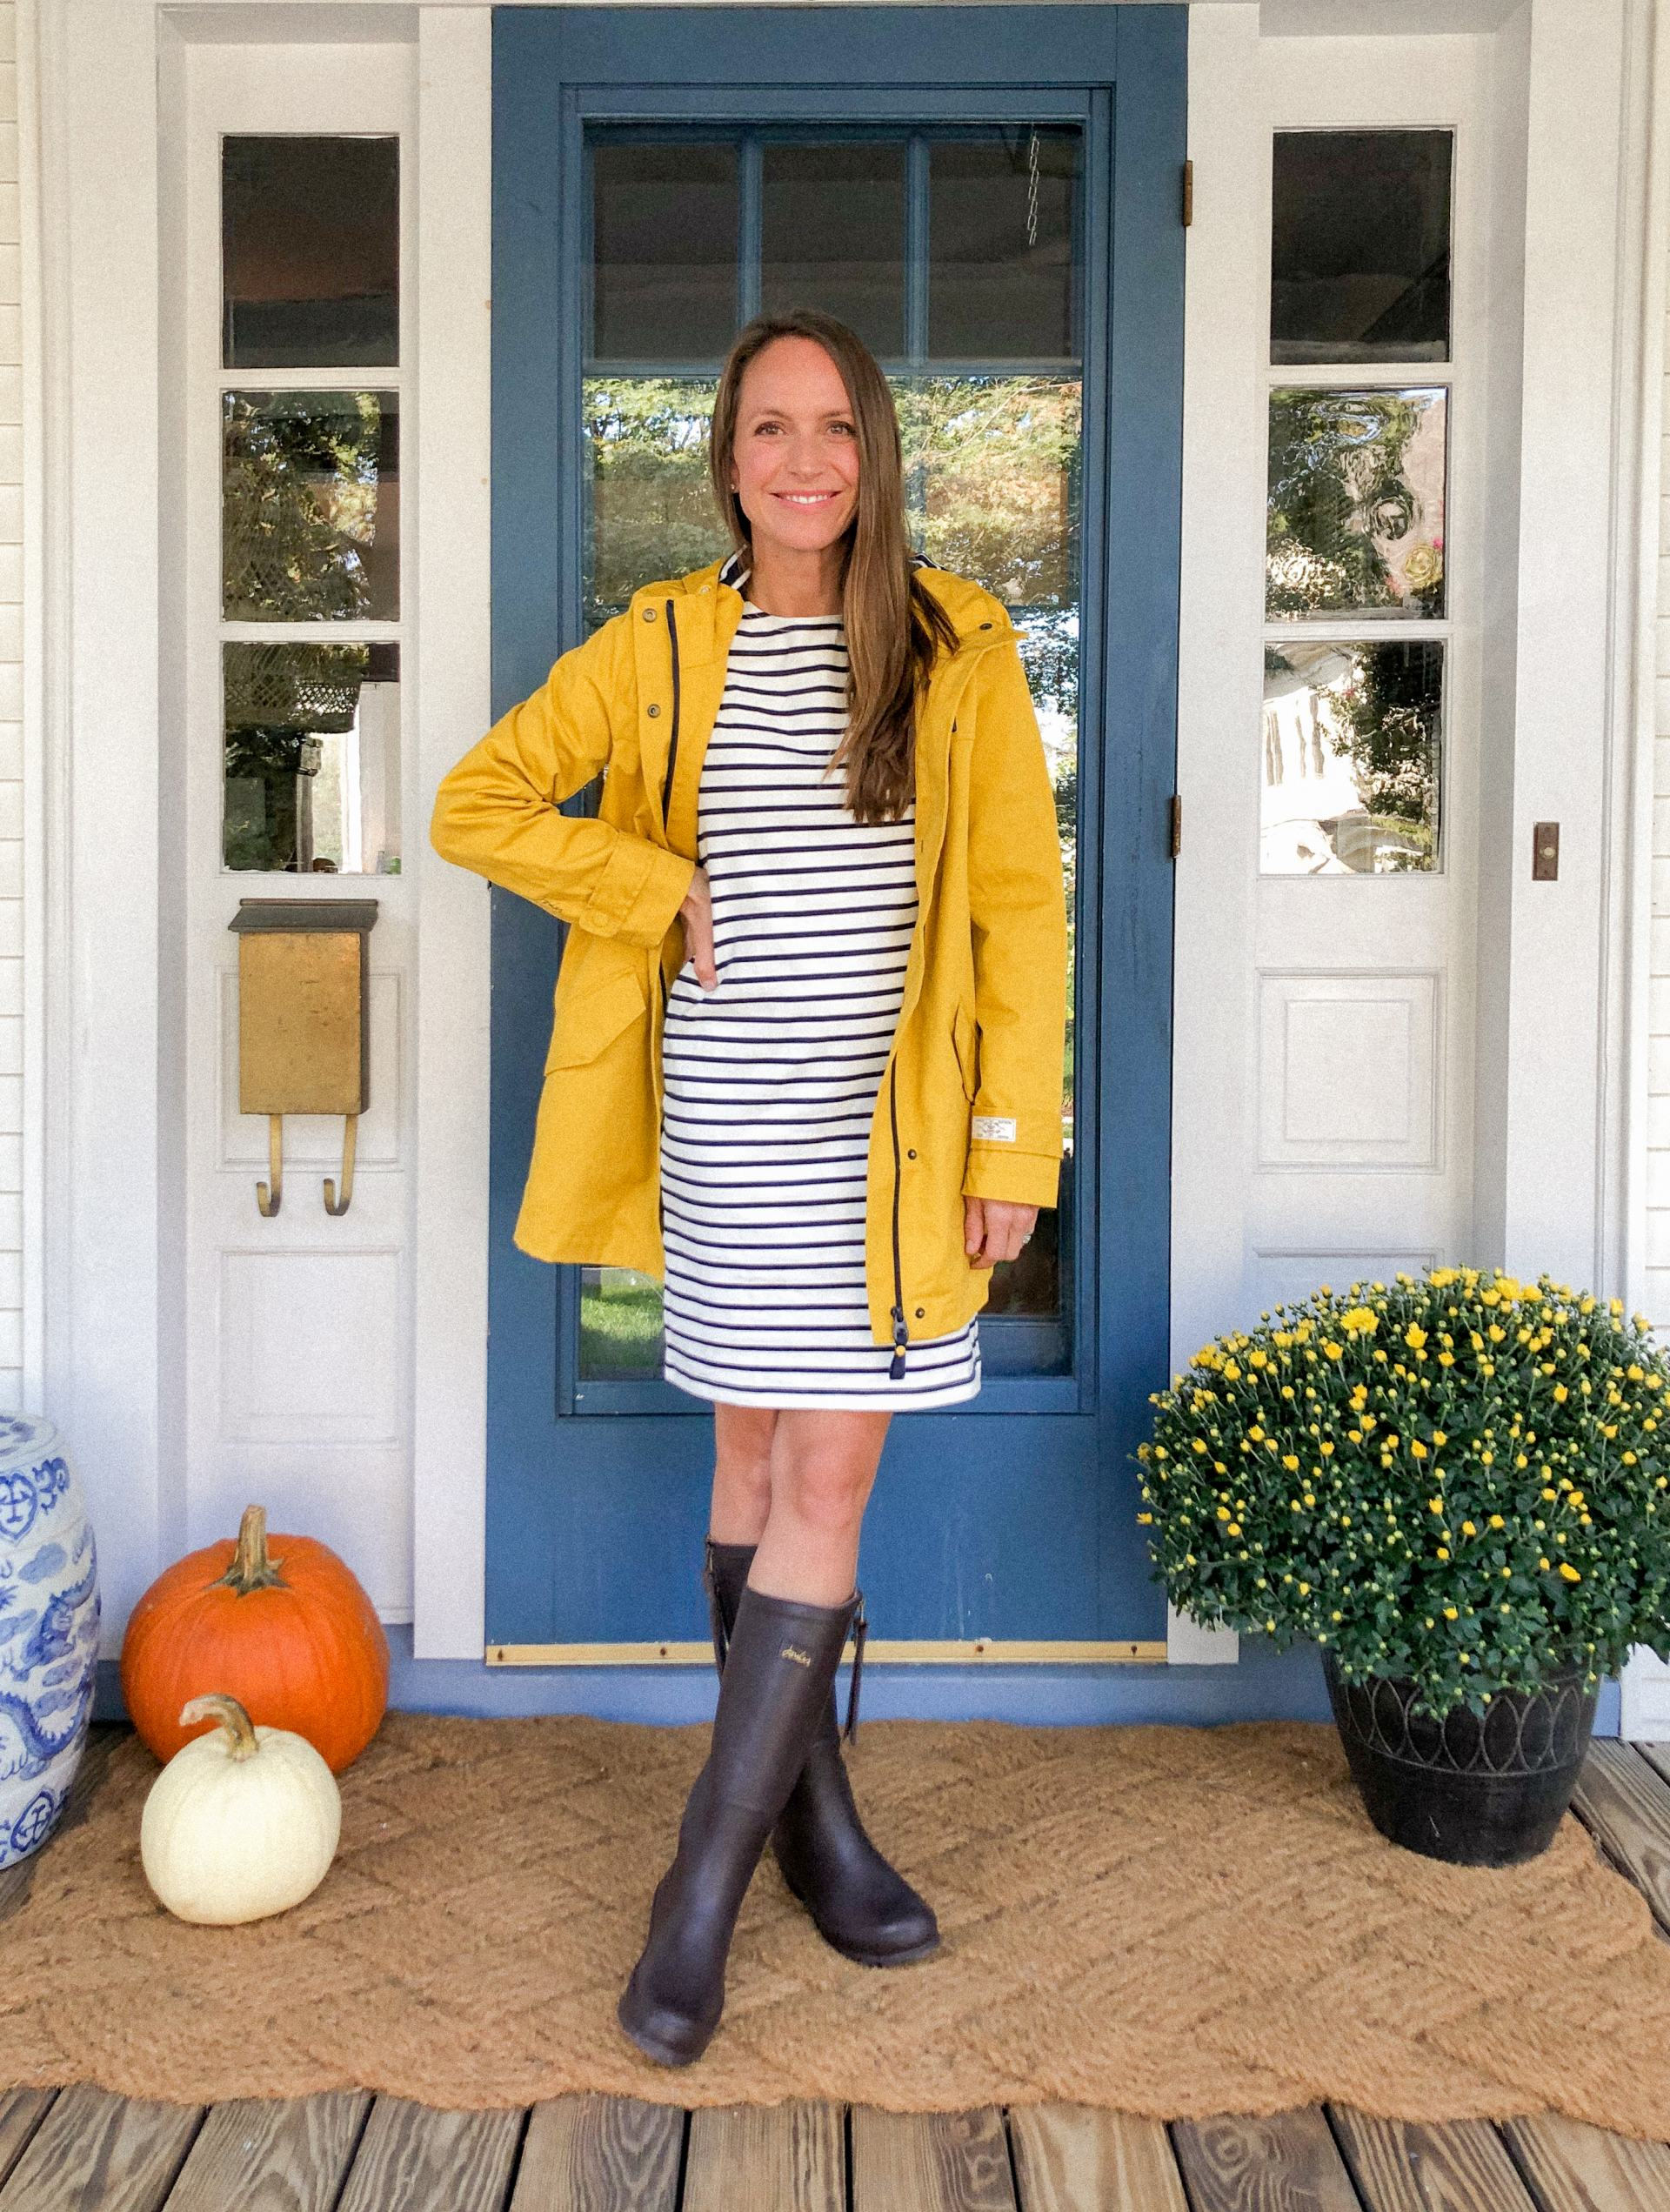 striped dress with yellow rain jacket and brown wellies